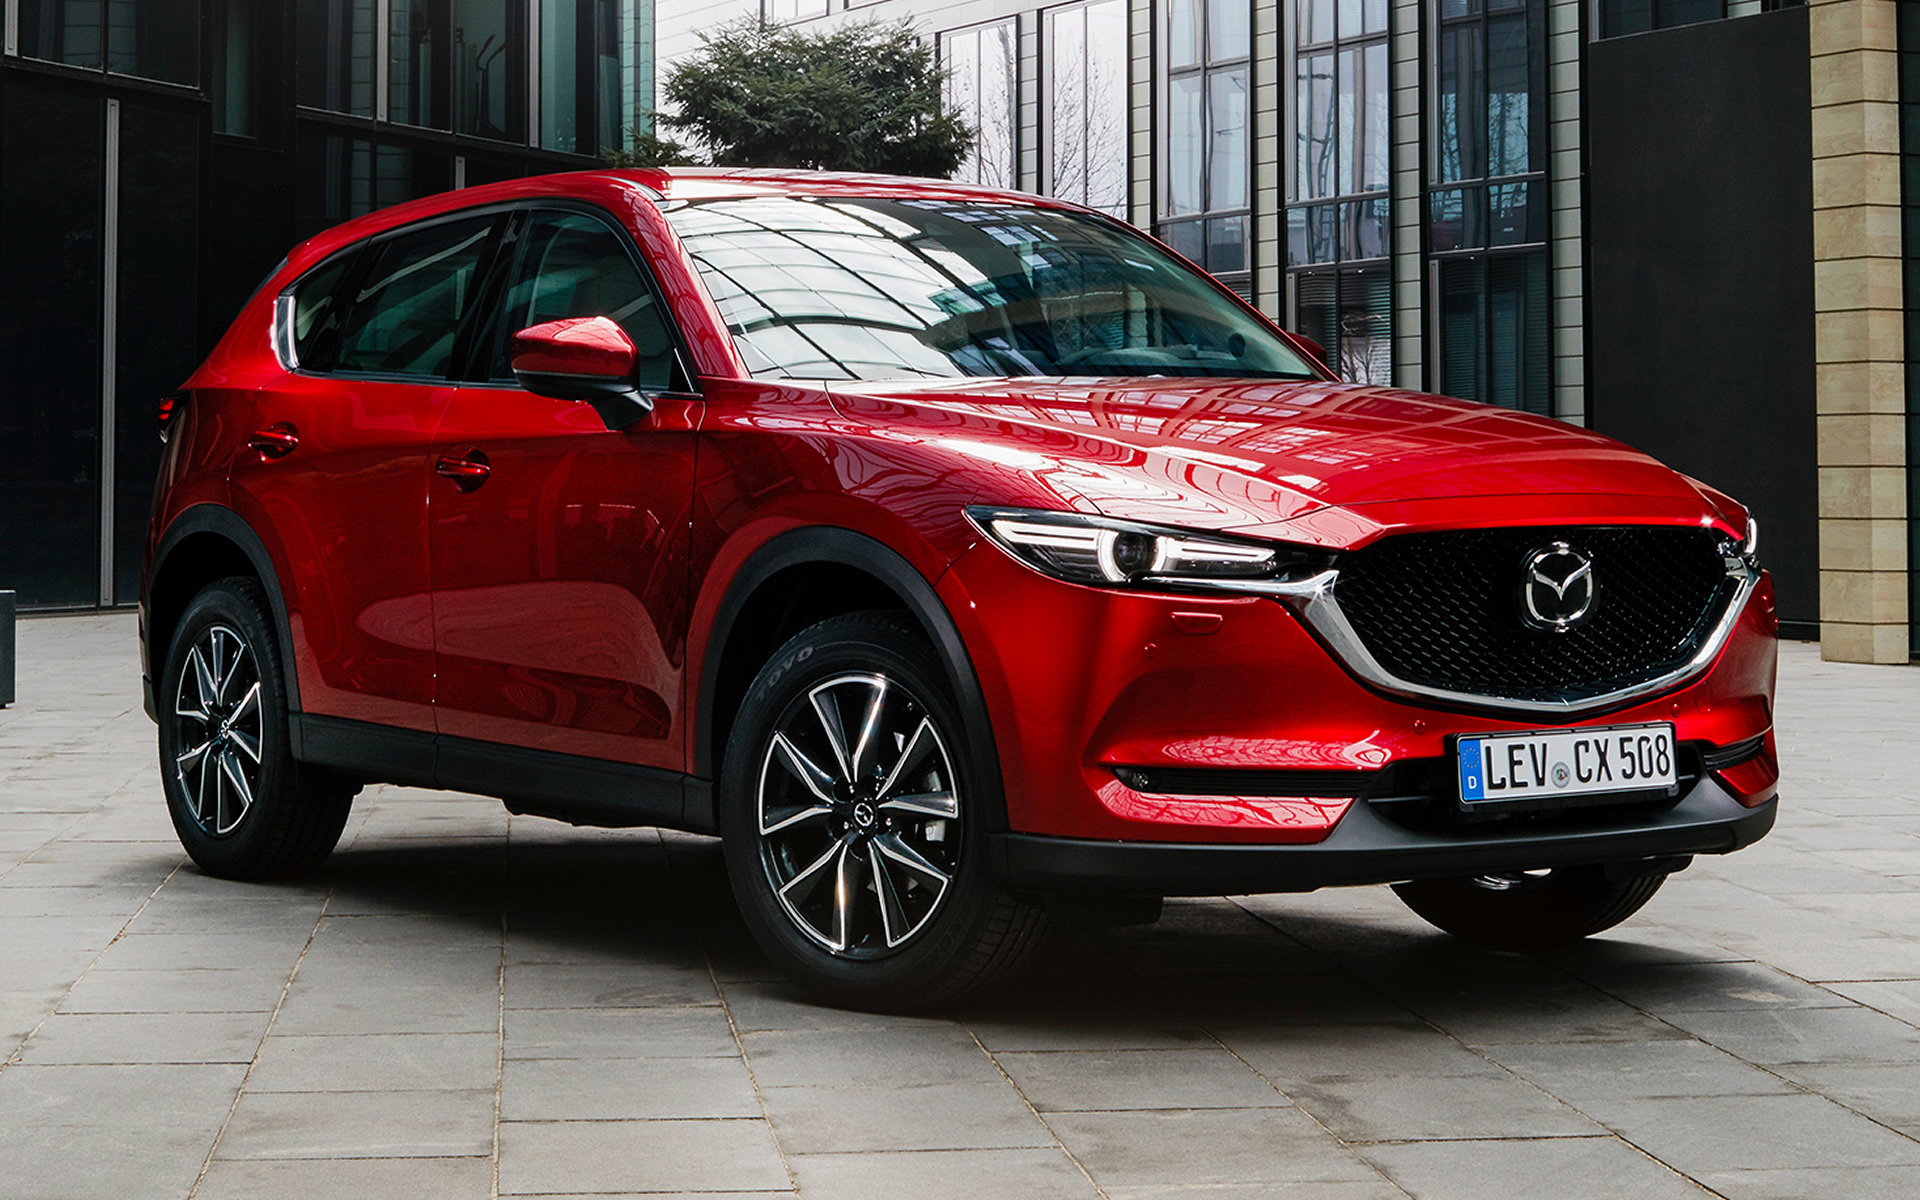 1920x1200 - Mazda CX-5 Wallpapers 1